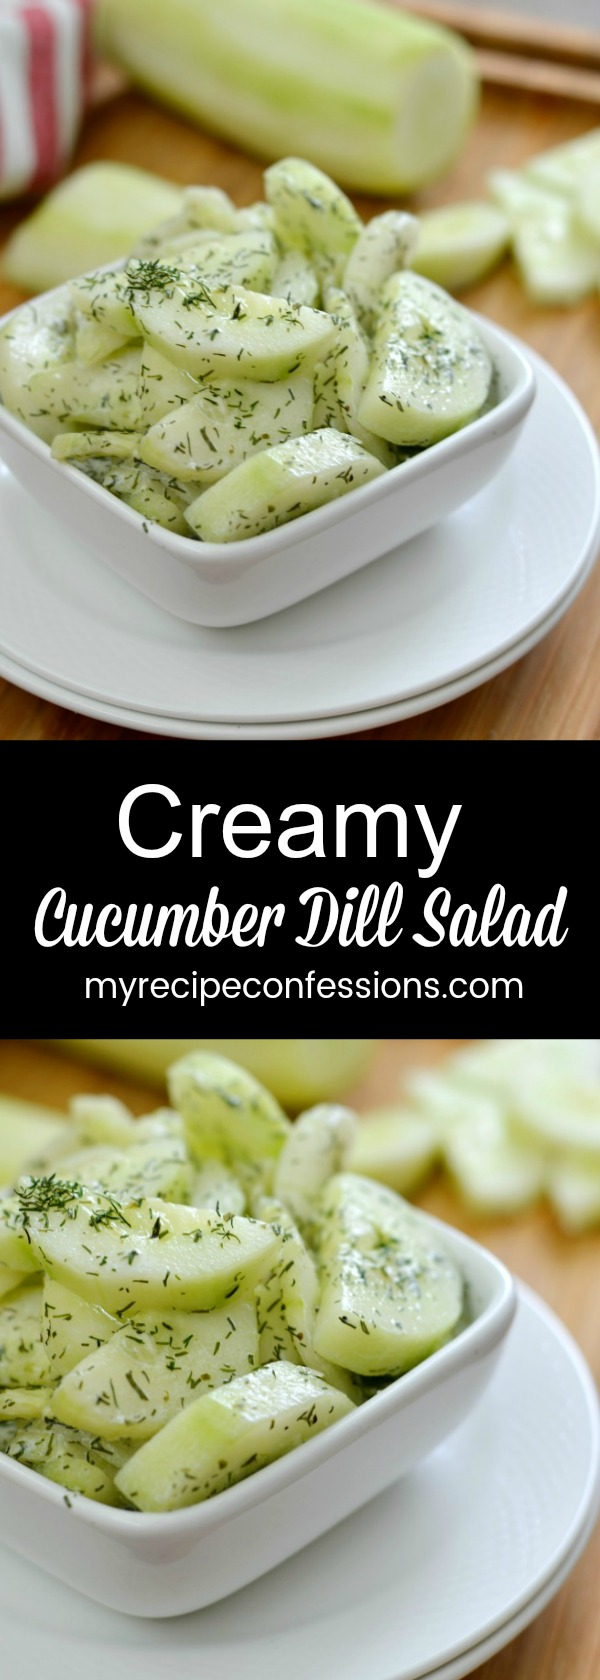 Creamy Cucumber Dill Salad is a healthy, quick, and easy salad that everybody will love! I love how light and refreshing it is. It's the perfect side salad for brunch, lunch, or dinner.